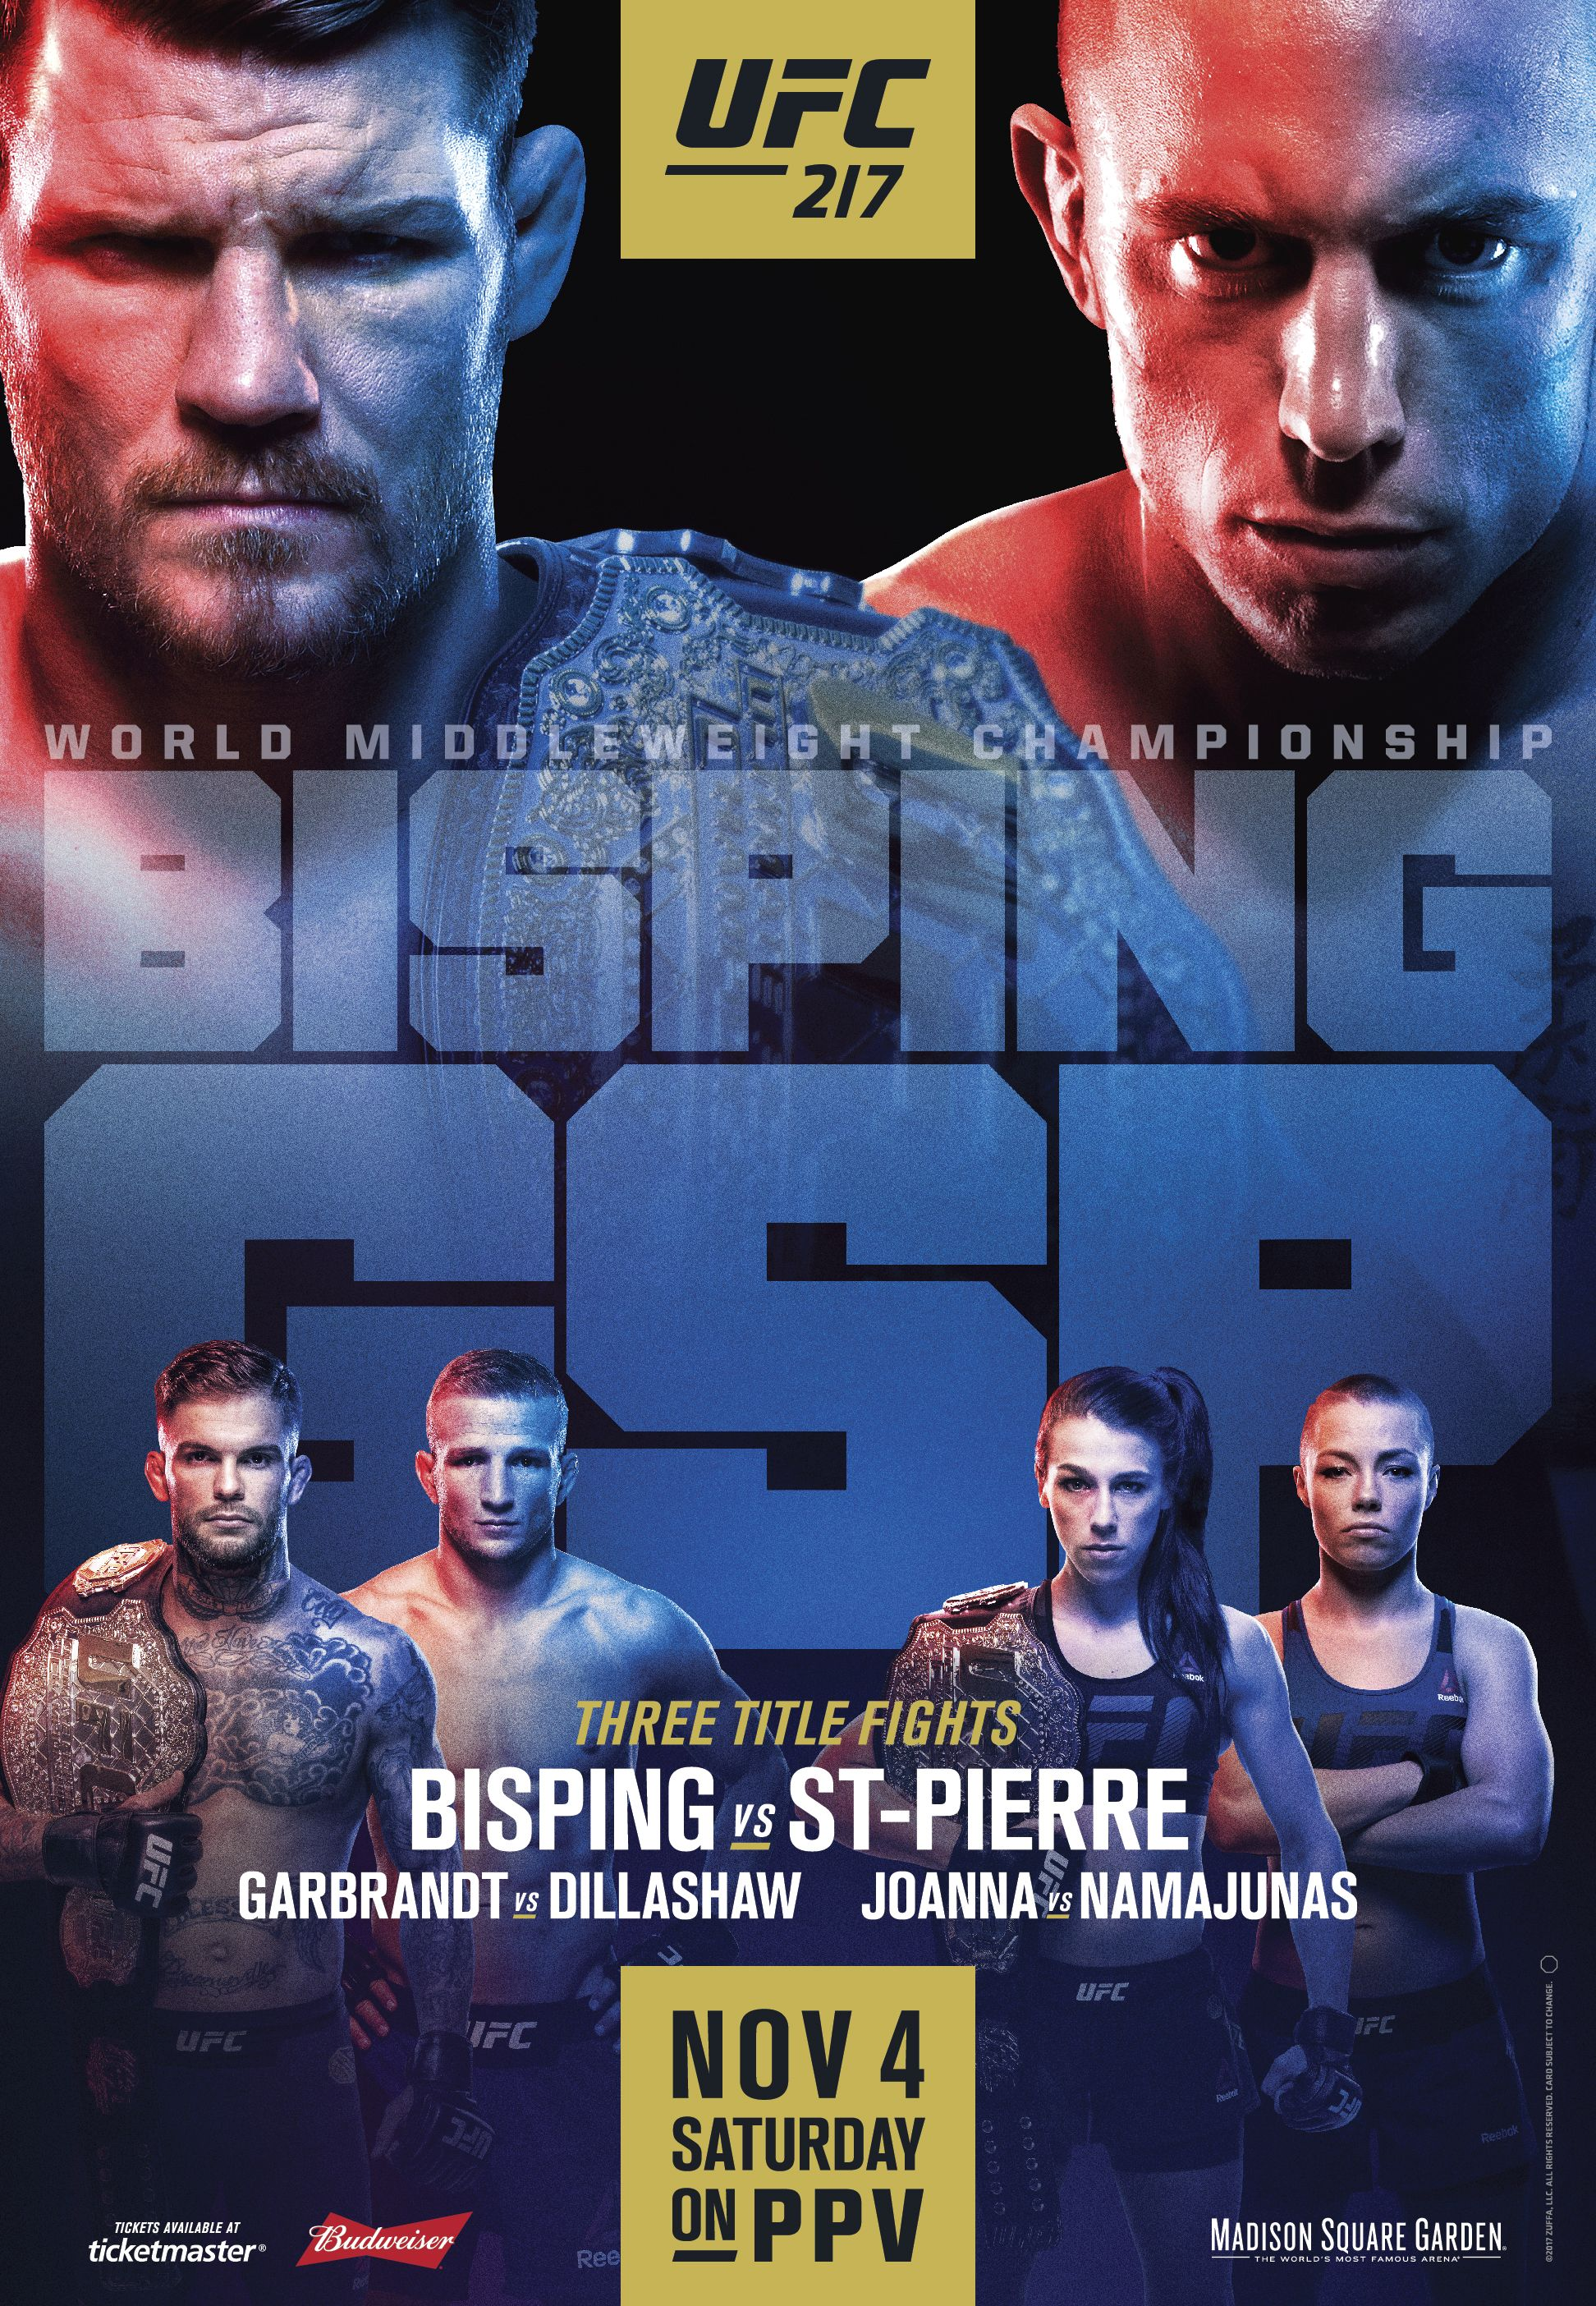 Ufc 217 At Venusloungeoc Saturday November 4 2017 Cover Charge Starts 4pm Free Buffet 7pm With Paid Admission Entertainers A Artes Marciais Mistas Ufc Mma